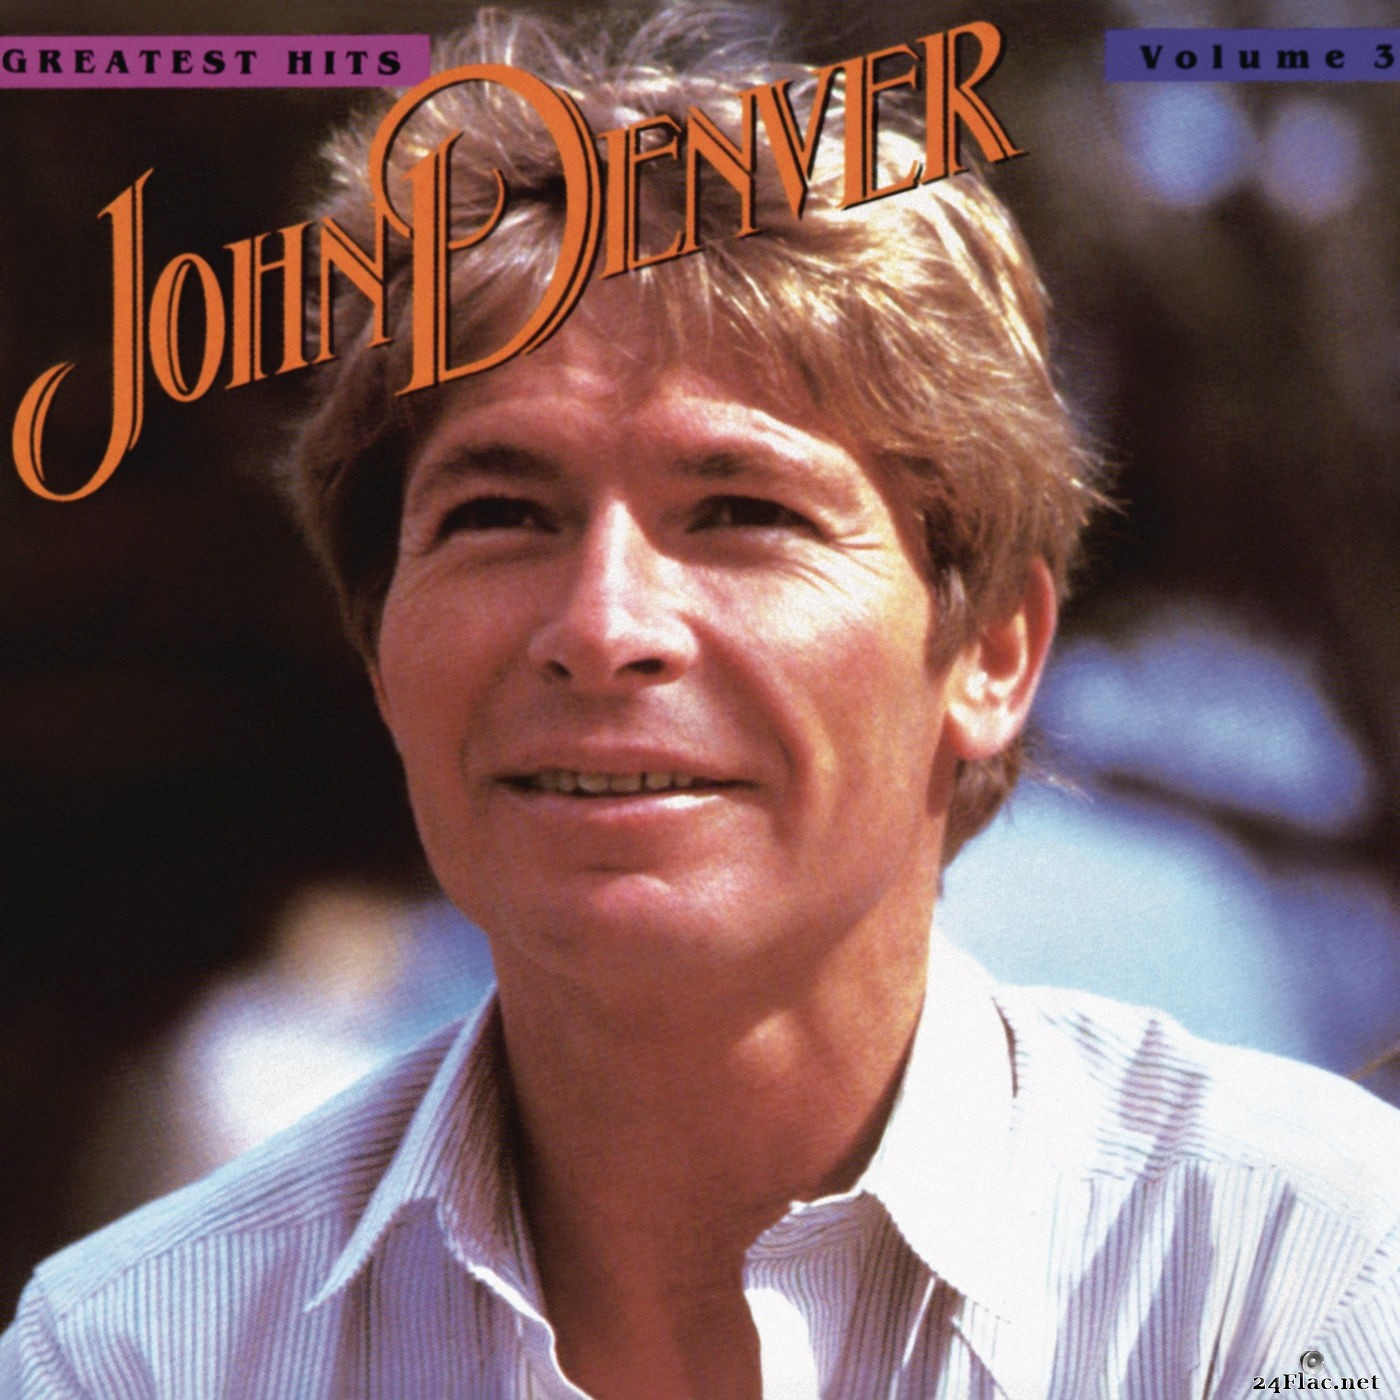 John Denver - John Denver's Greatest Hits, Volume 3 (2019) Hi-Res